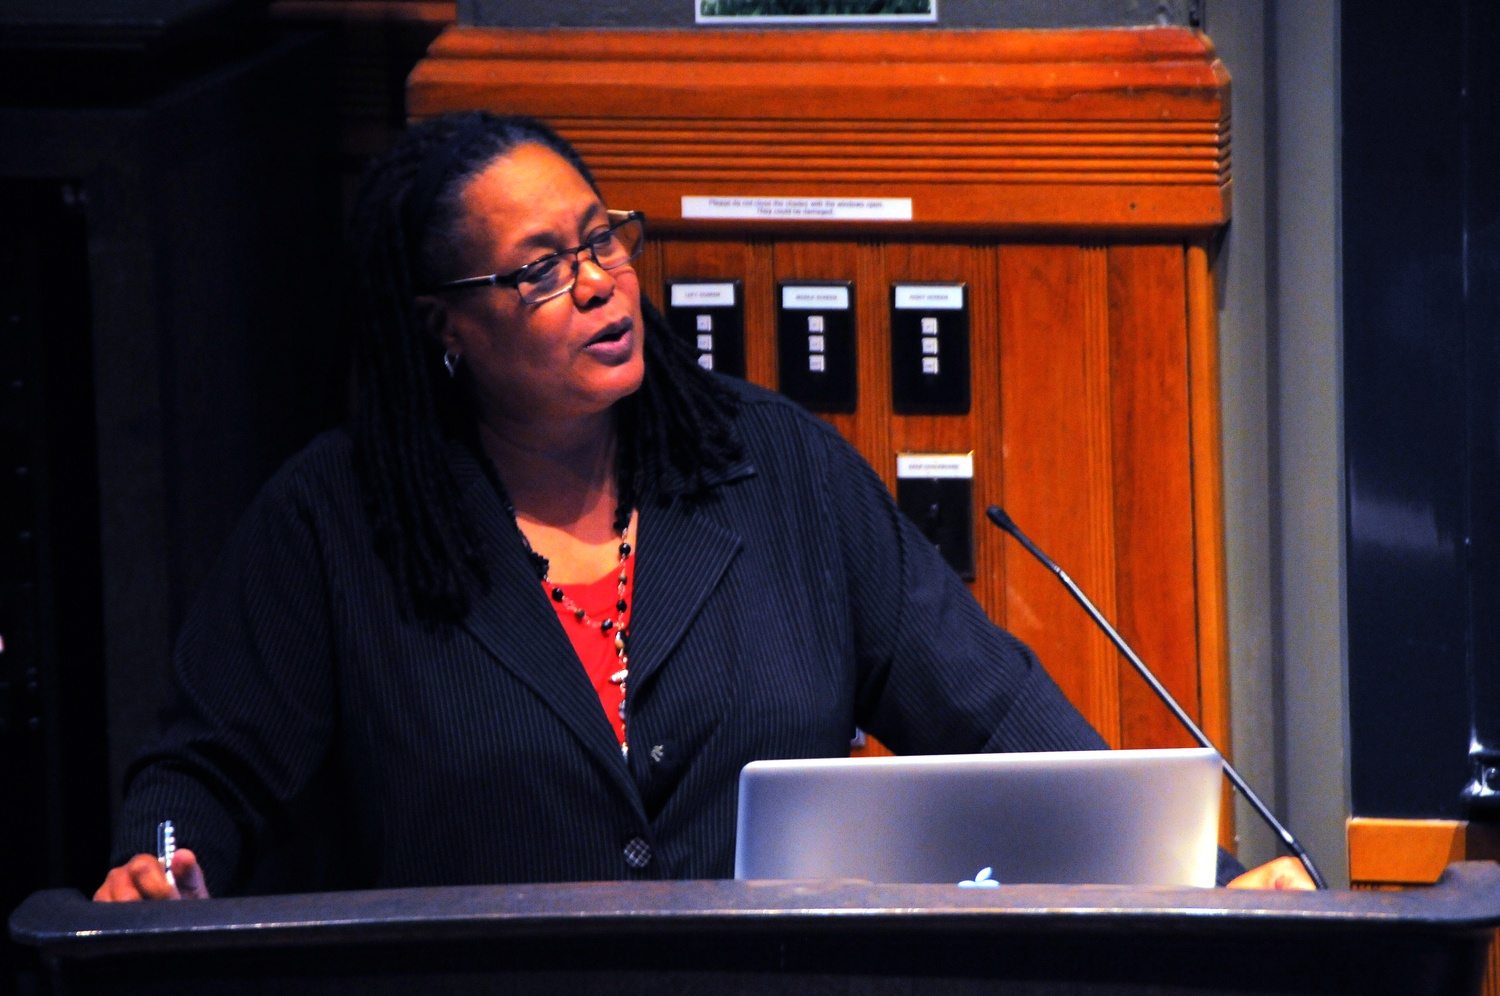 Evelynn M. Hammonds, shown speaking at the Harvard College Governance panel in a file photo from last November, is on a sabbatical leave after five years as dean of Harvard College.